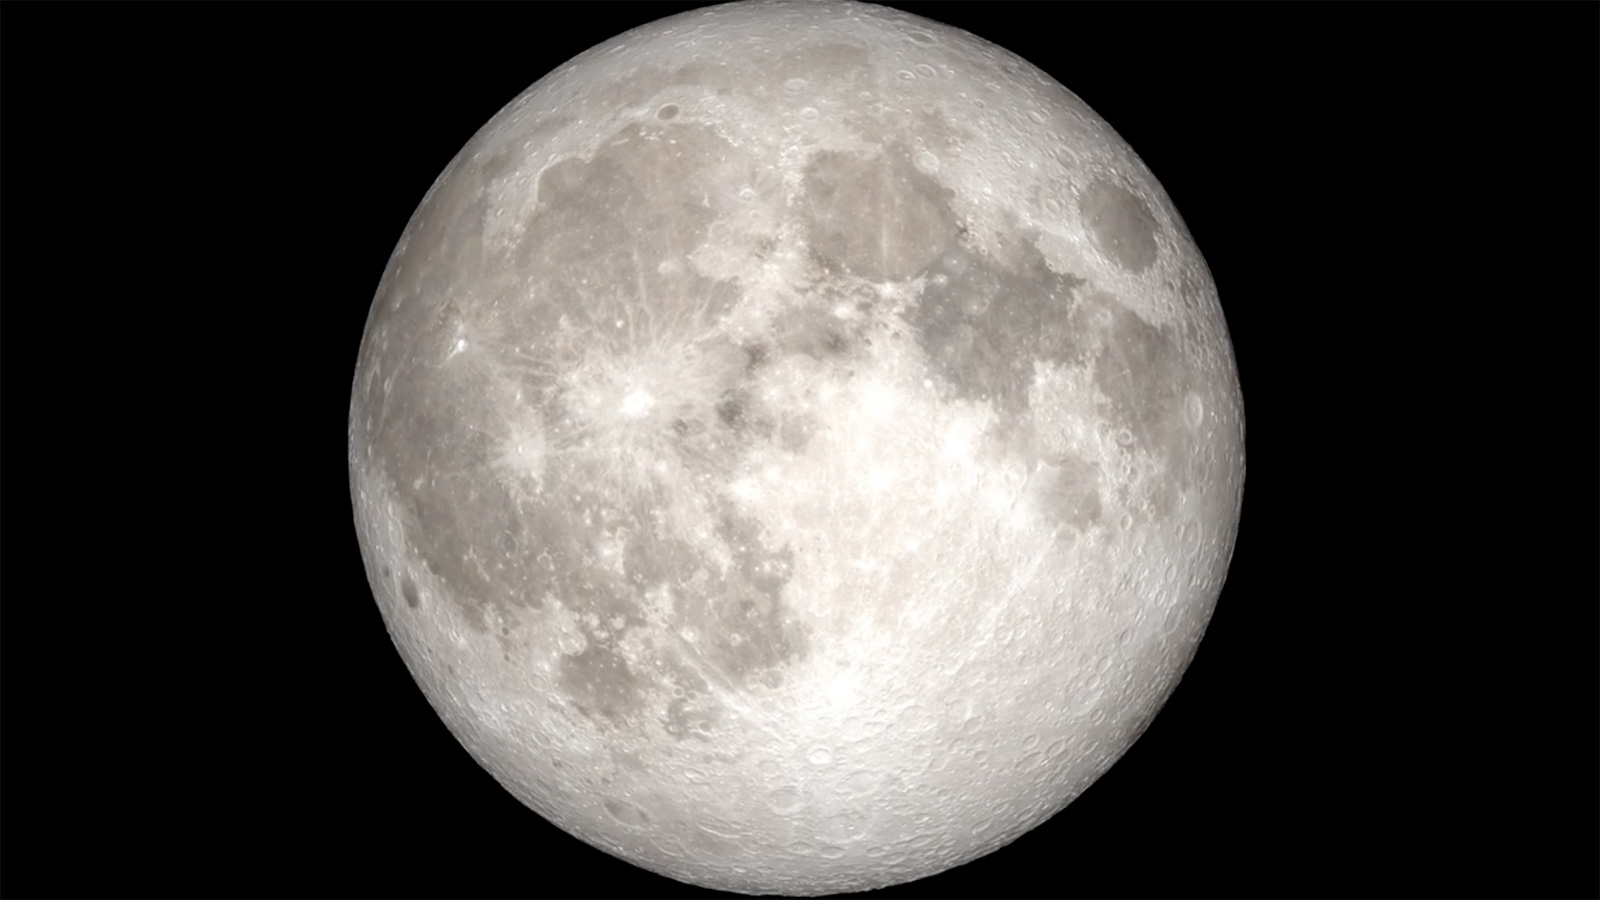 slide 3 - Animated view of the full disc of the Moon rotating in space.